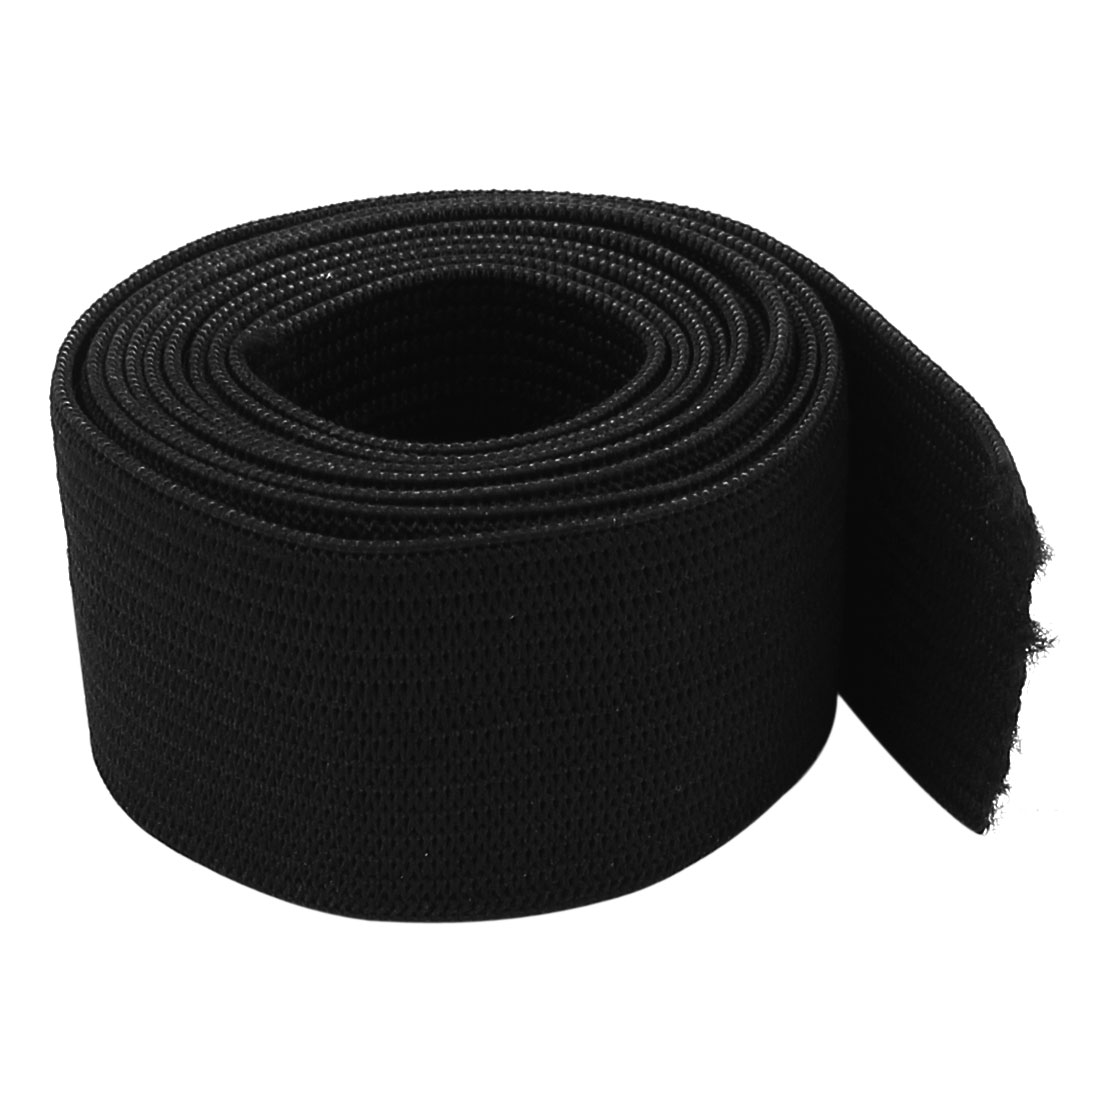 Household Trousers Pants Sewing Stretchy Band Black 25mm Wide 1M Long for Home Essential